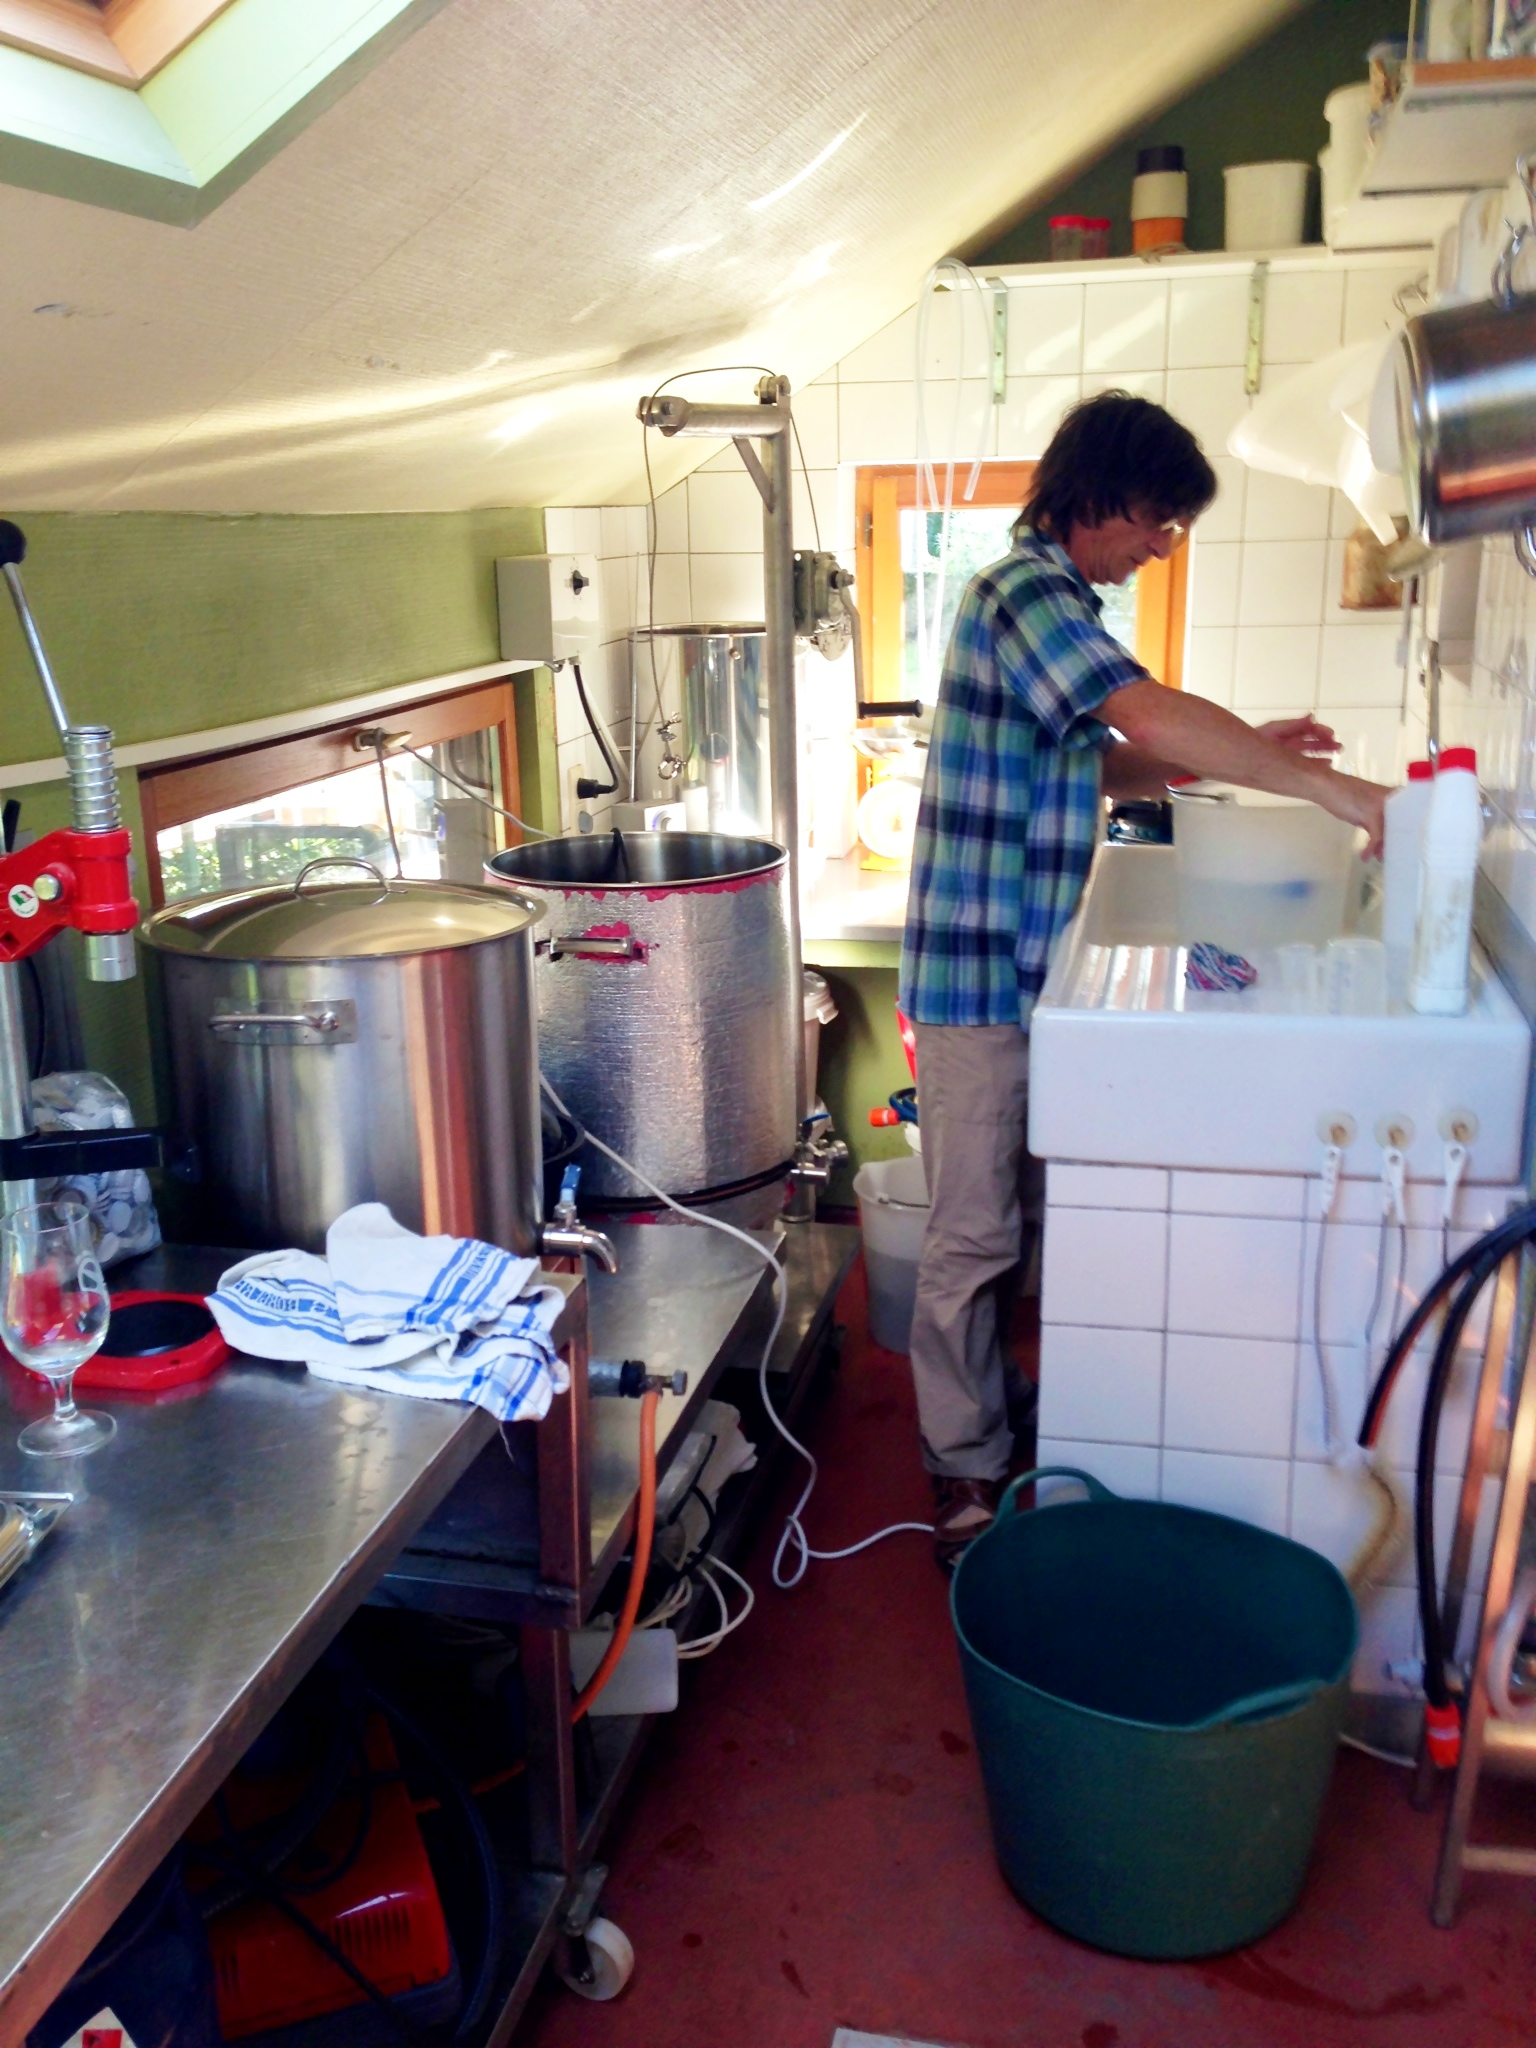 Pol of InterPol Brewry at La Vieille Forge